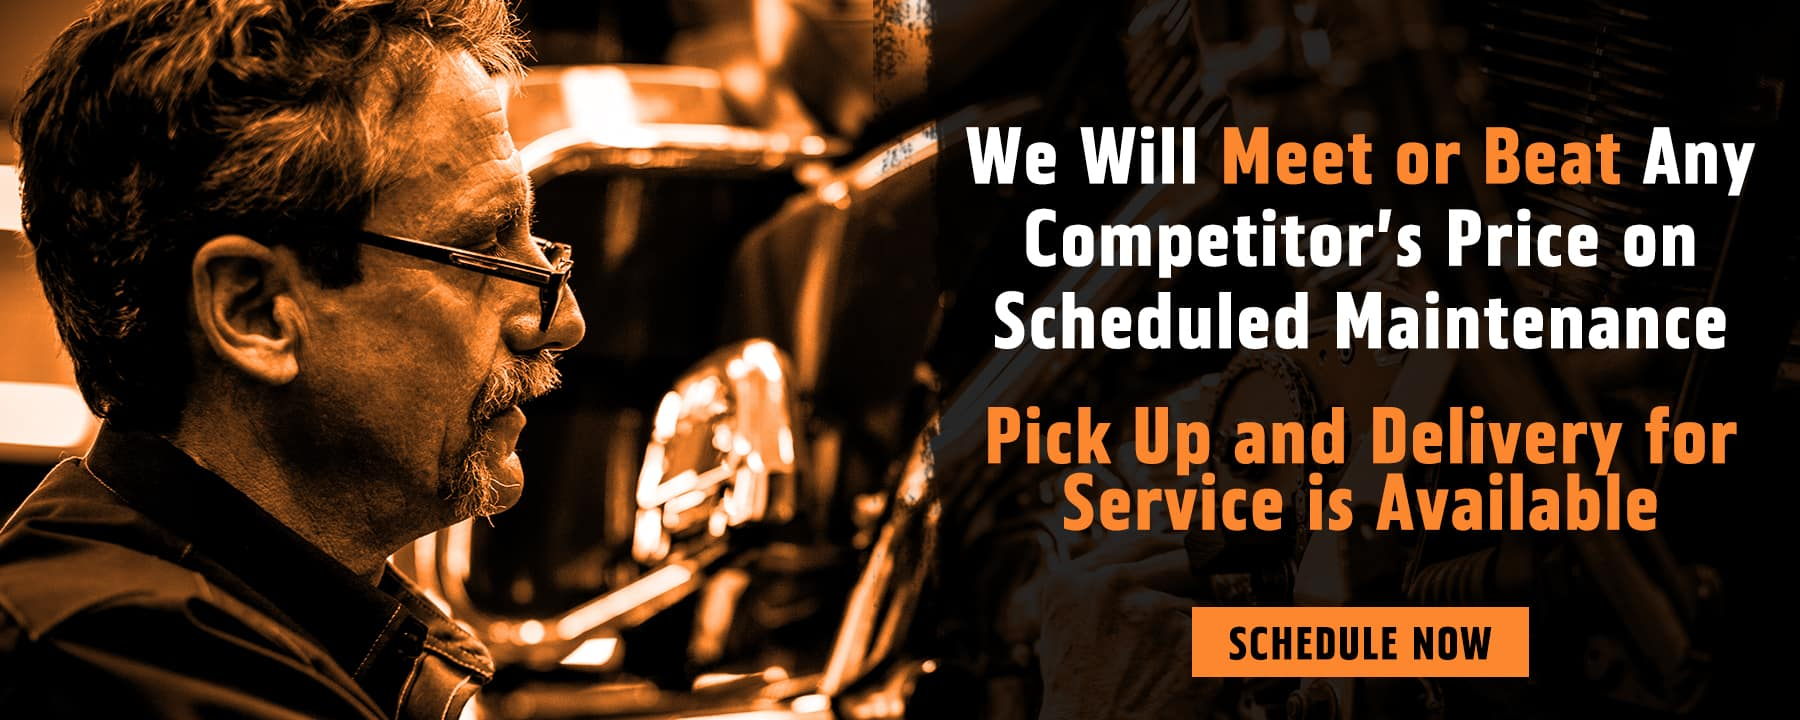 We Will Meet or Beat Any Competitor's Price on Scheduled Maintenance!